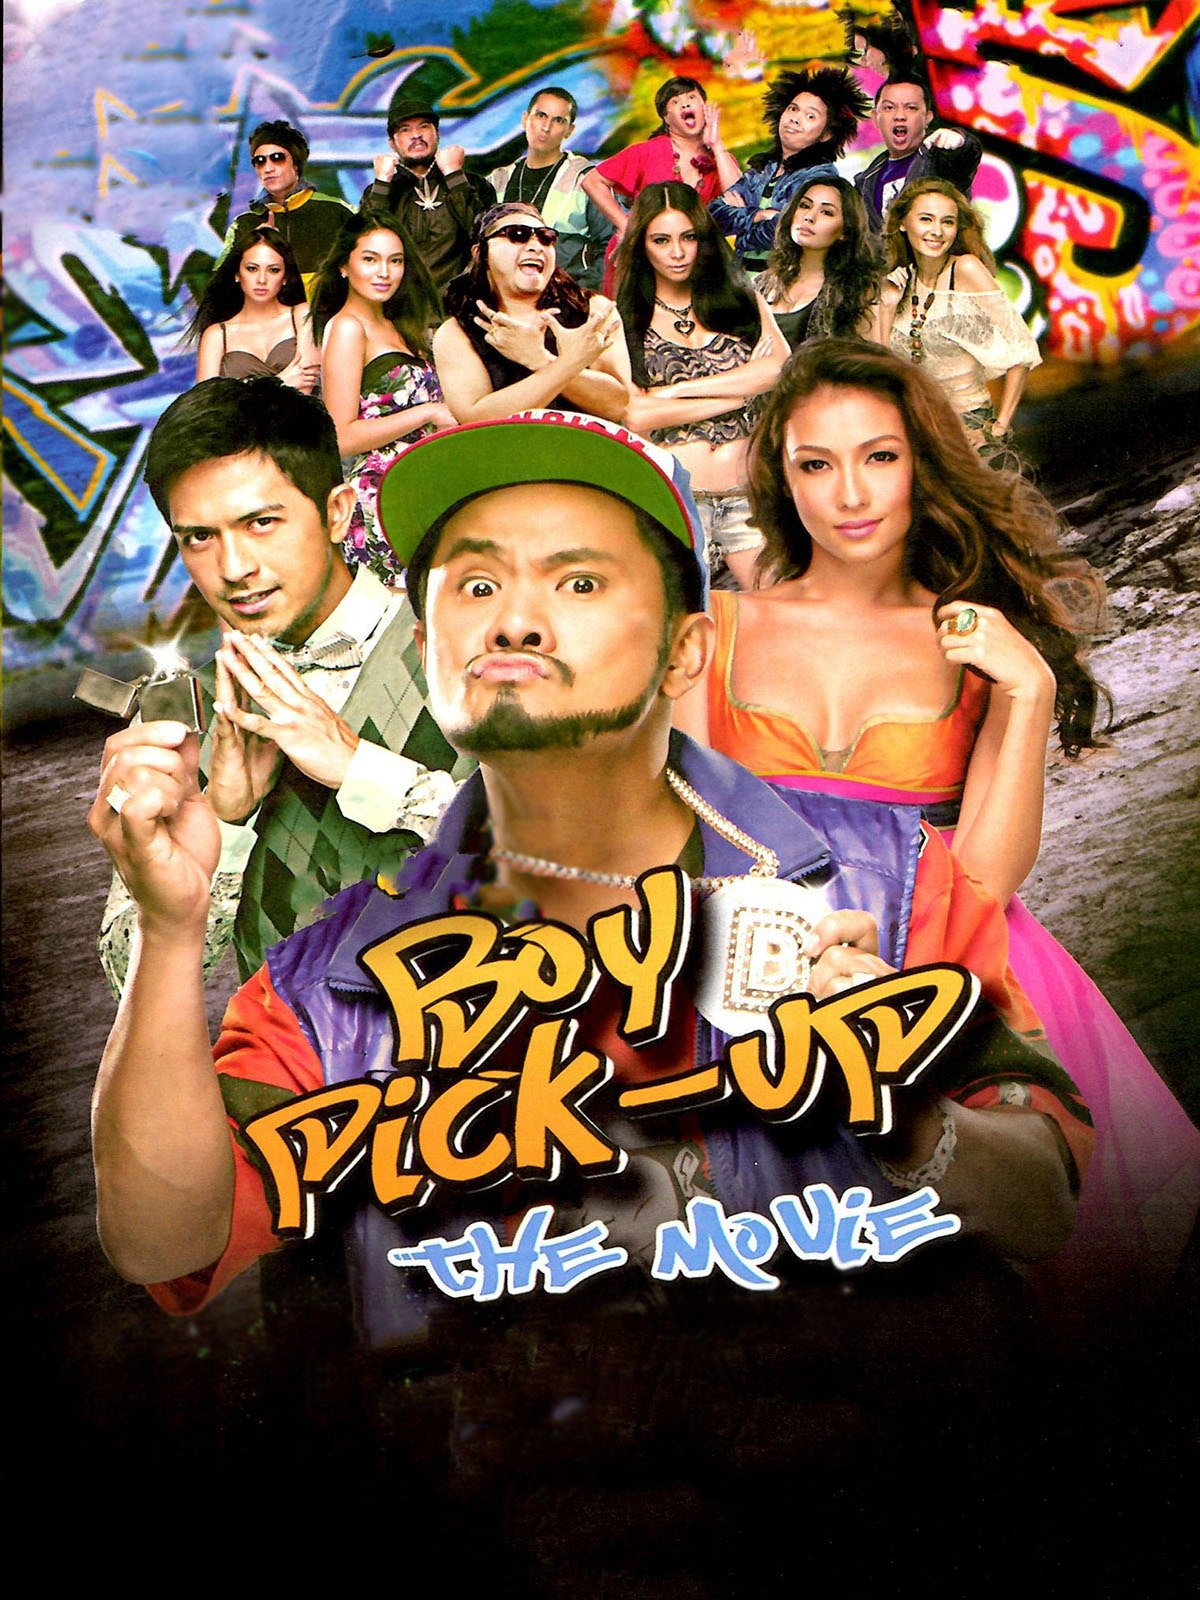 Boy Pick-Up